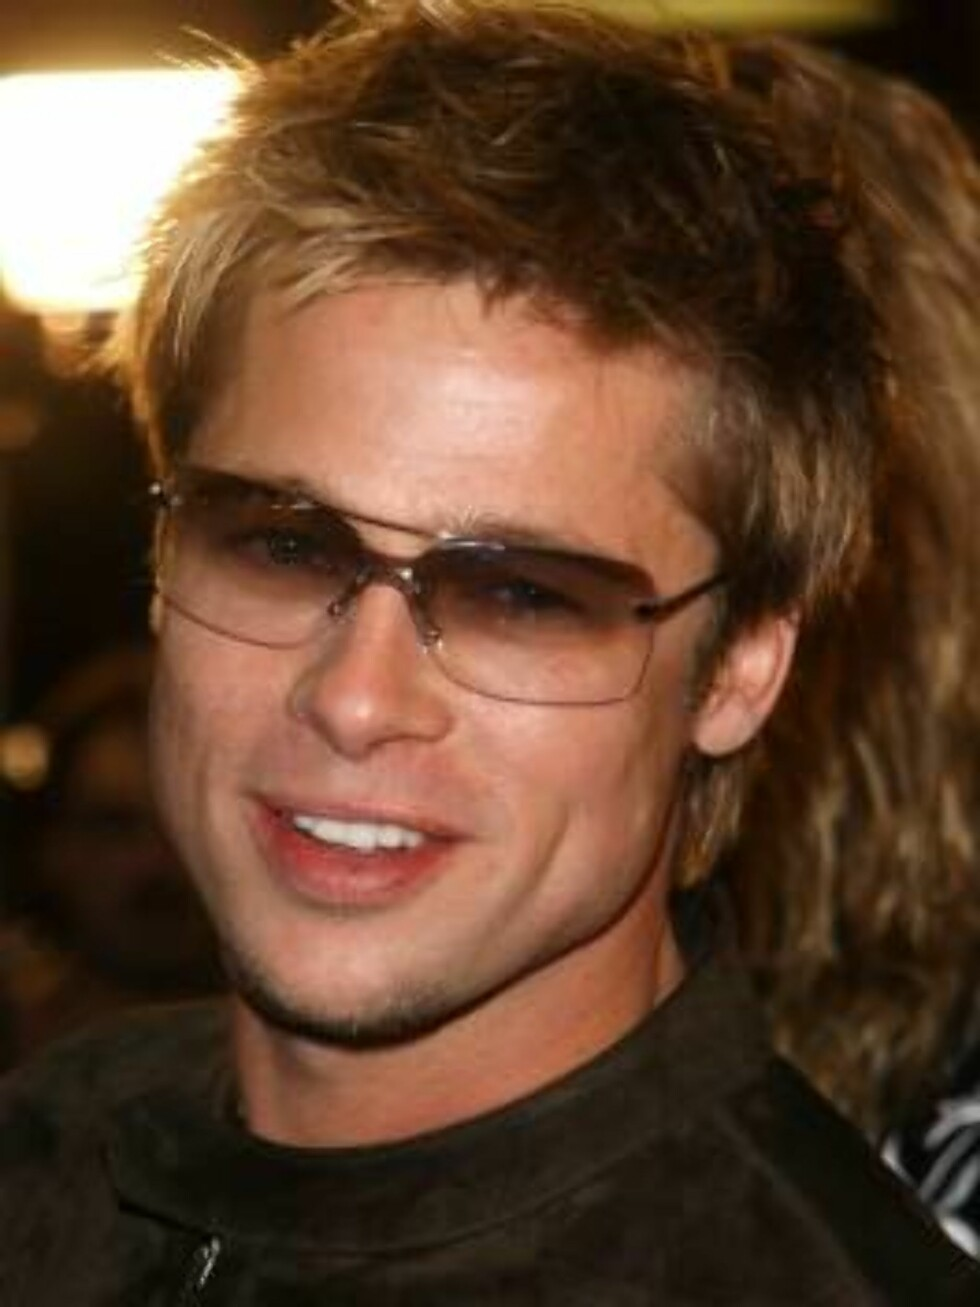 """397391 15:  Actor Brad Pitt attends the premiere of the film """"Spy Game"""" November 19, 2001 in Los Angeles, CA. (Photo by Vince Bucci/Getty Images) All Over Press Foto: All Over Press"""